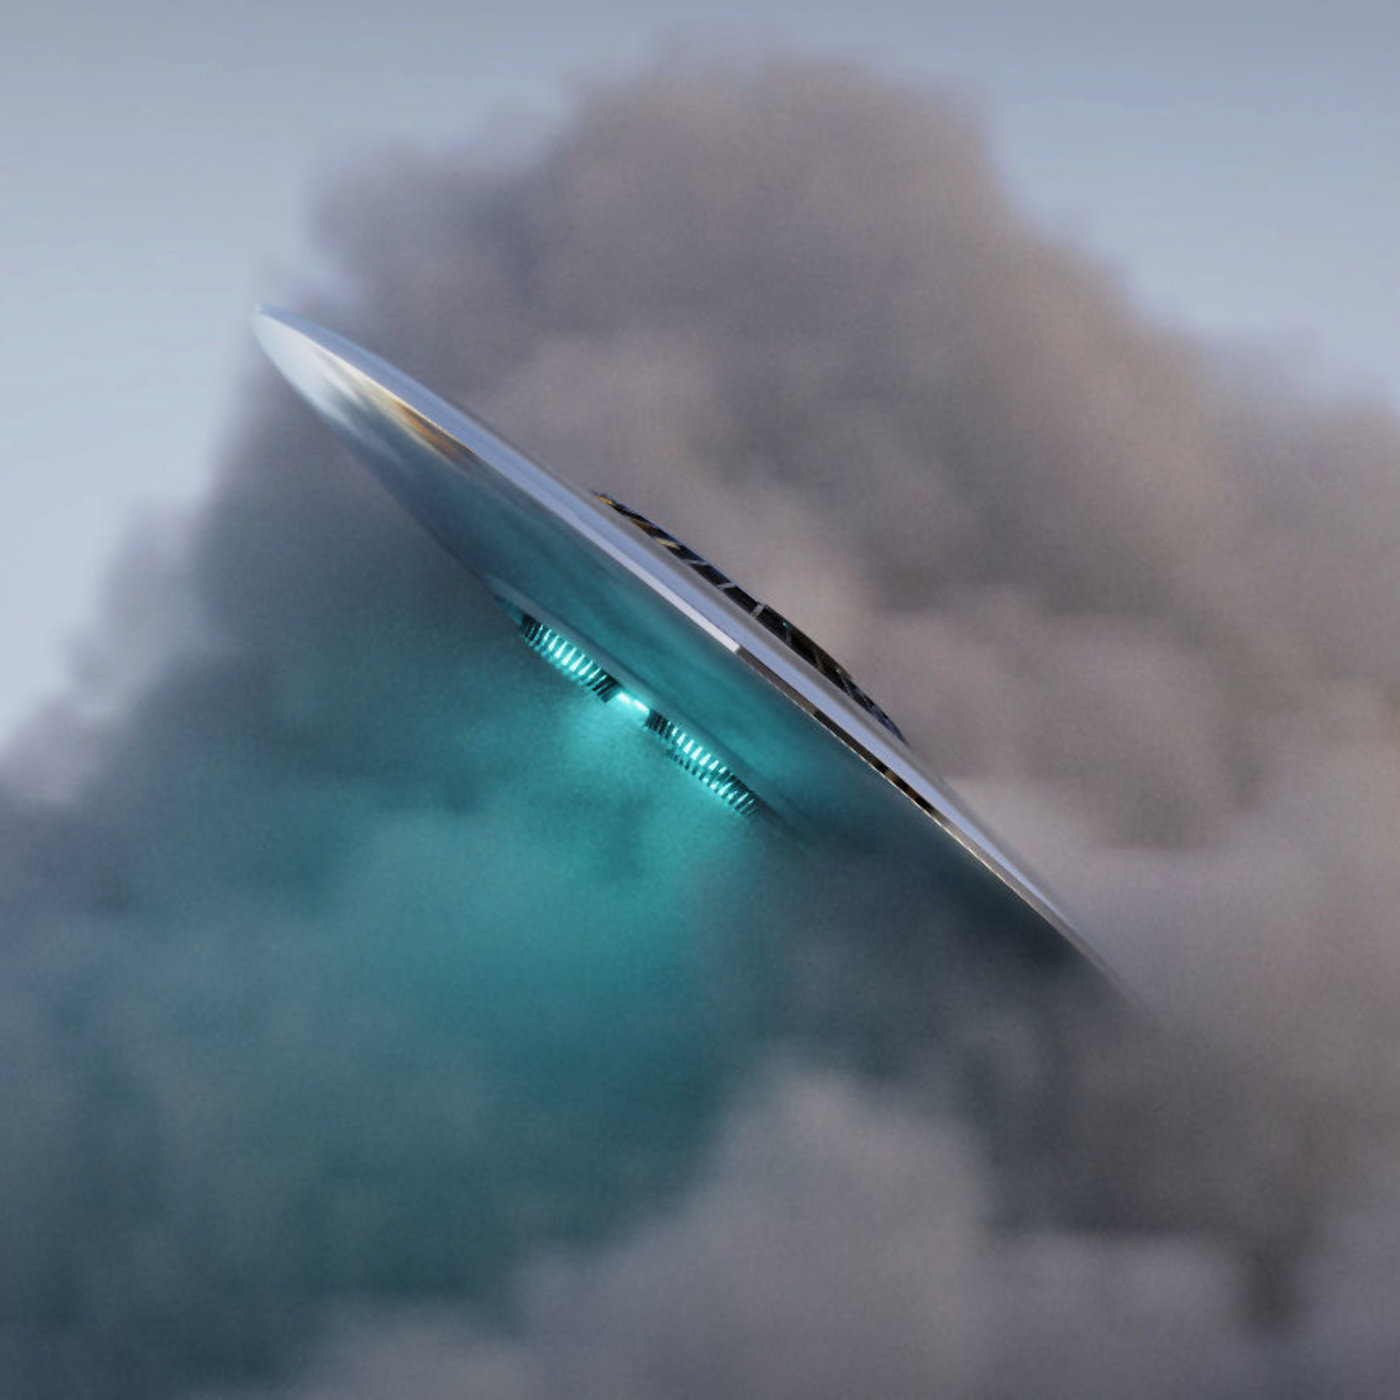 Just a UFO